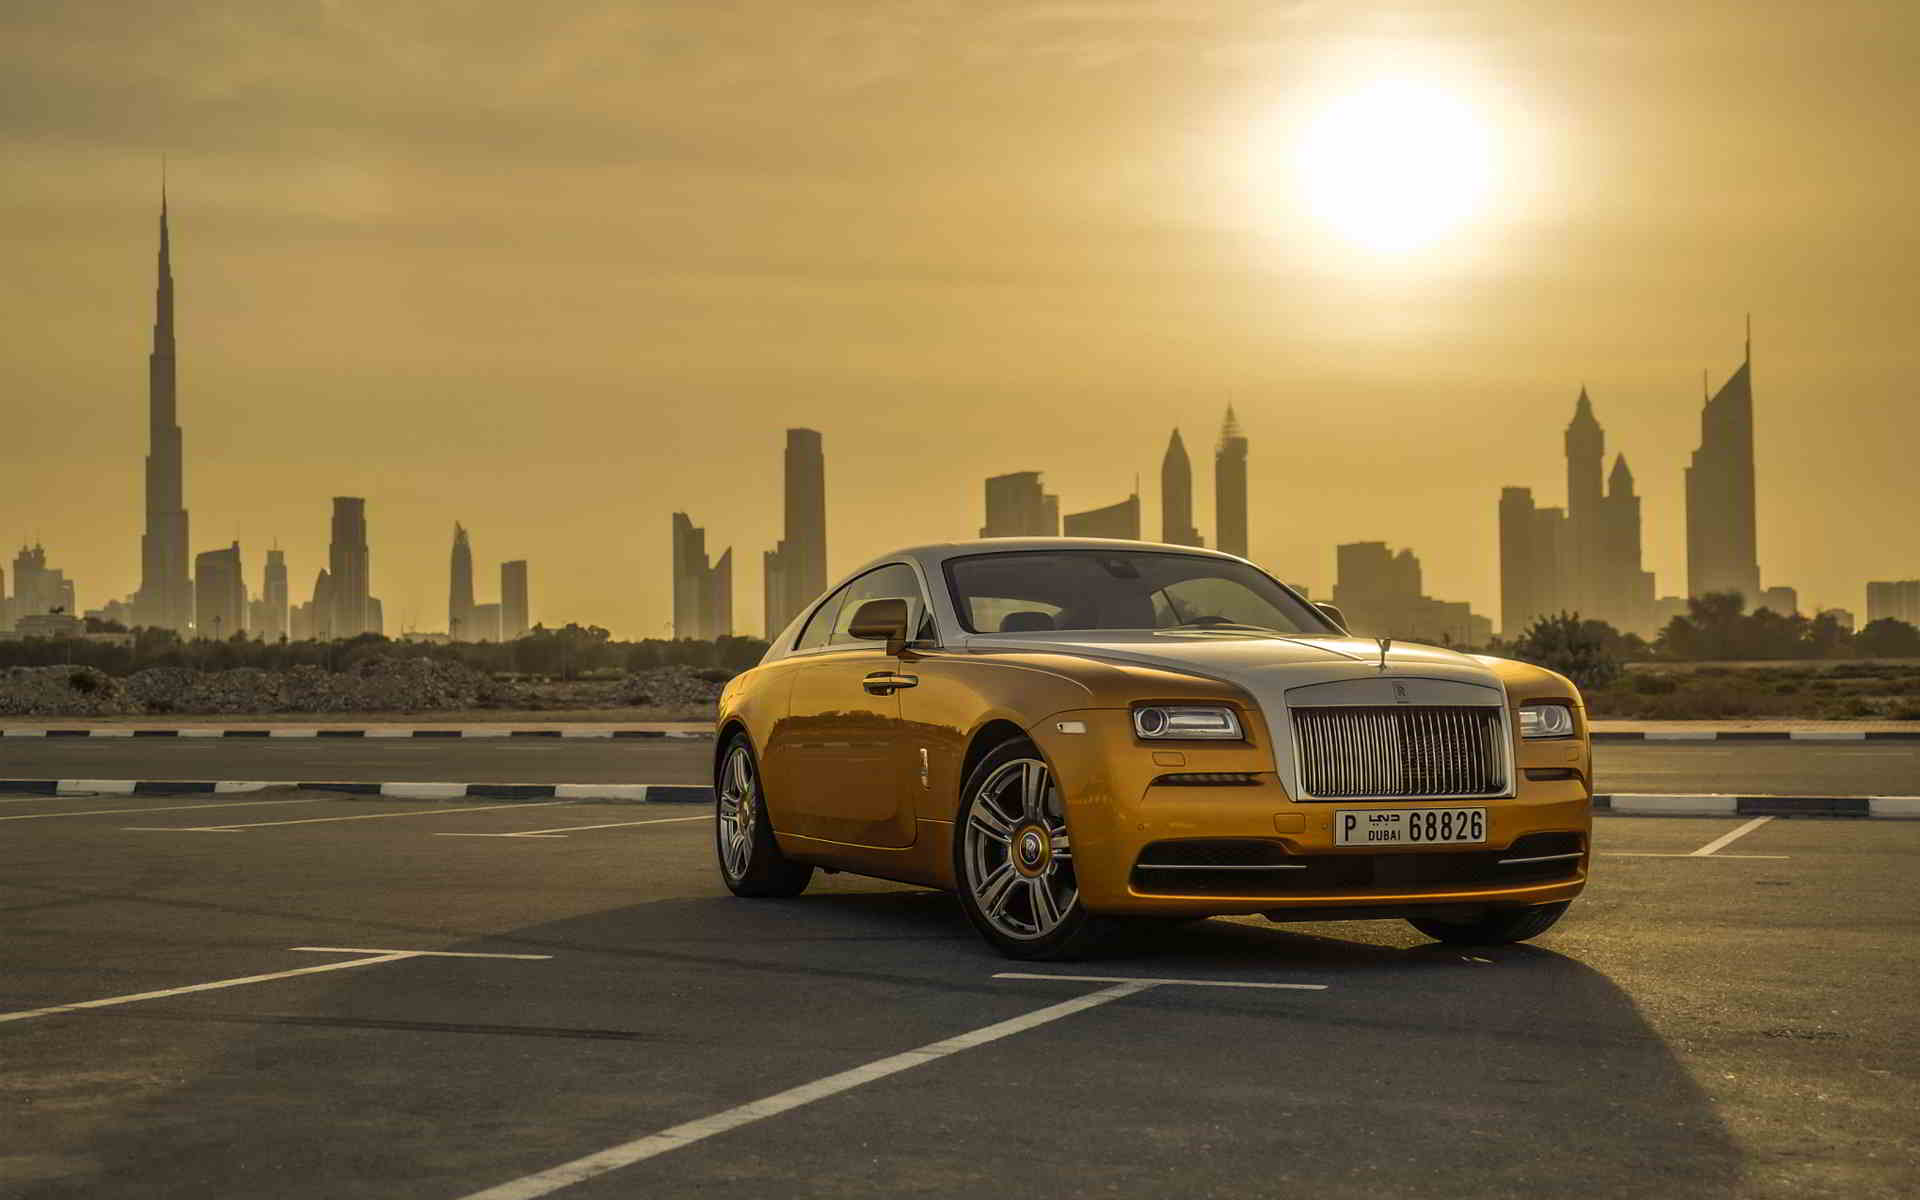 Rolls Royce Car Wallpaper Free Download 46 Full Hd Cool Car Wallpapers That Look Amazing Free